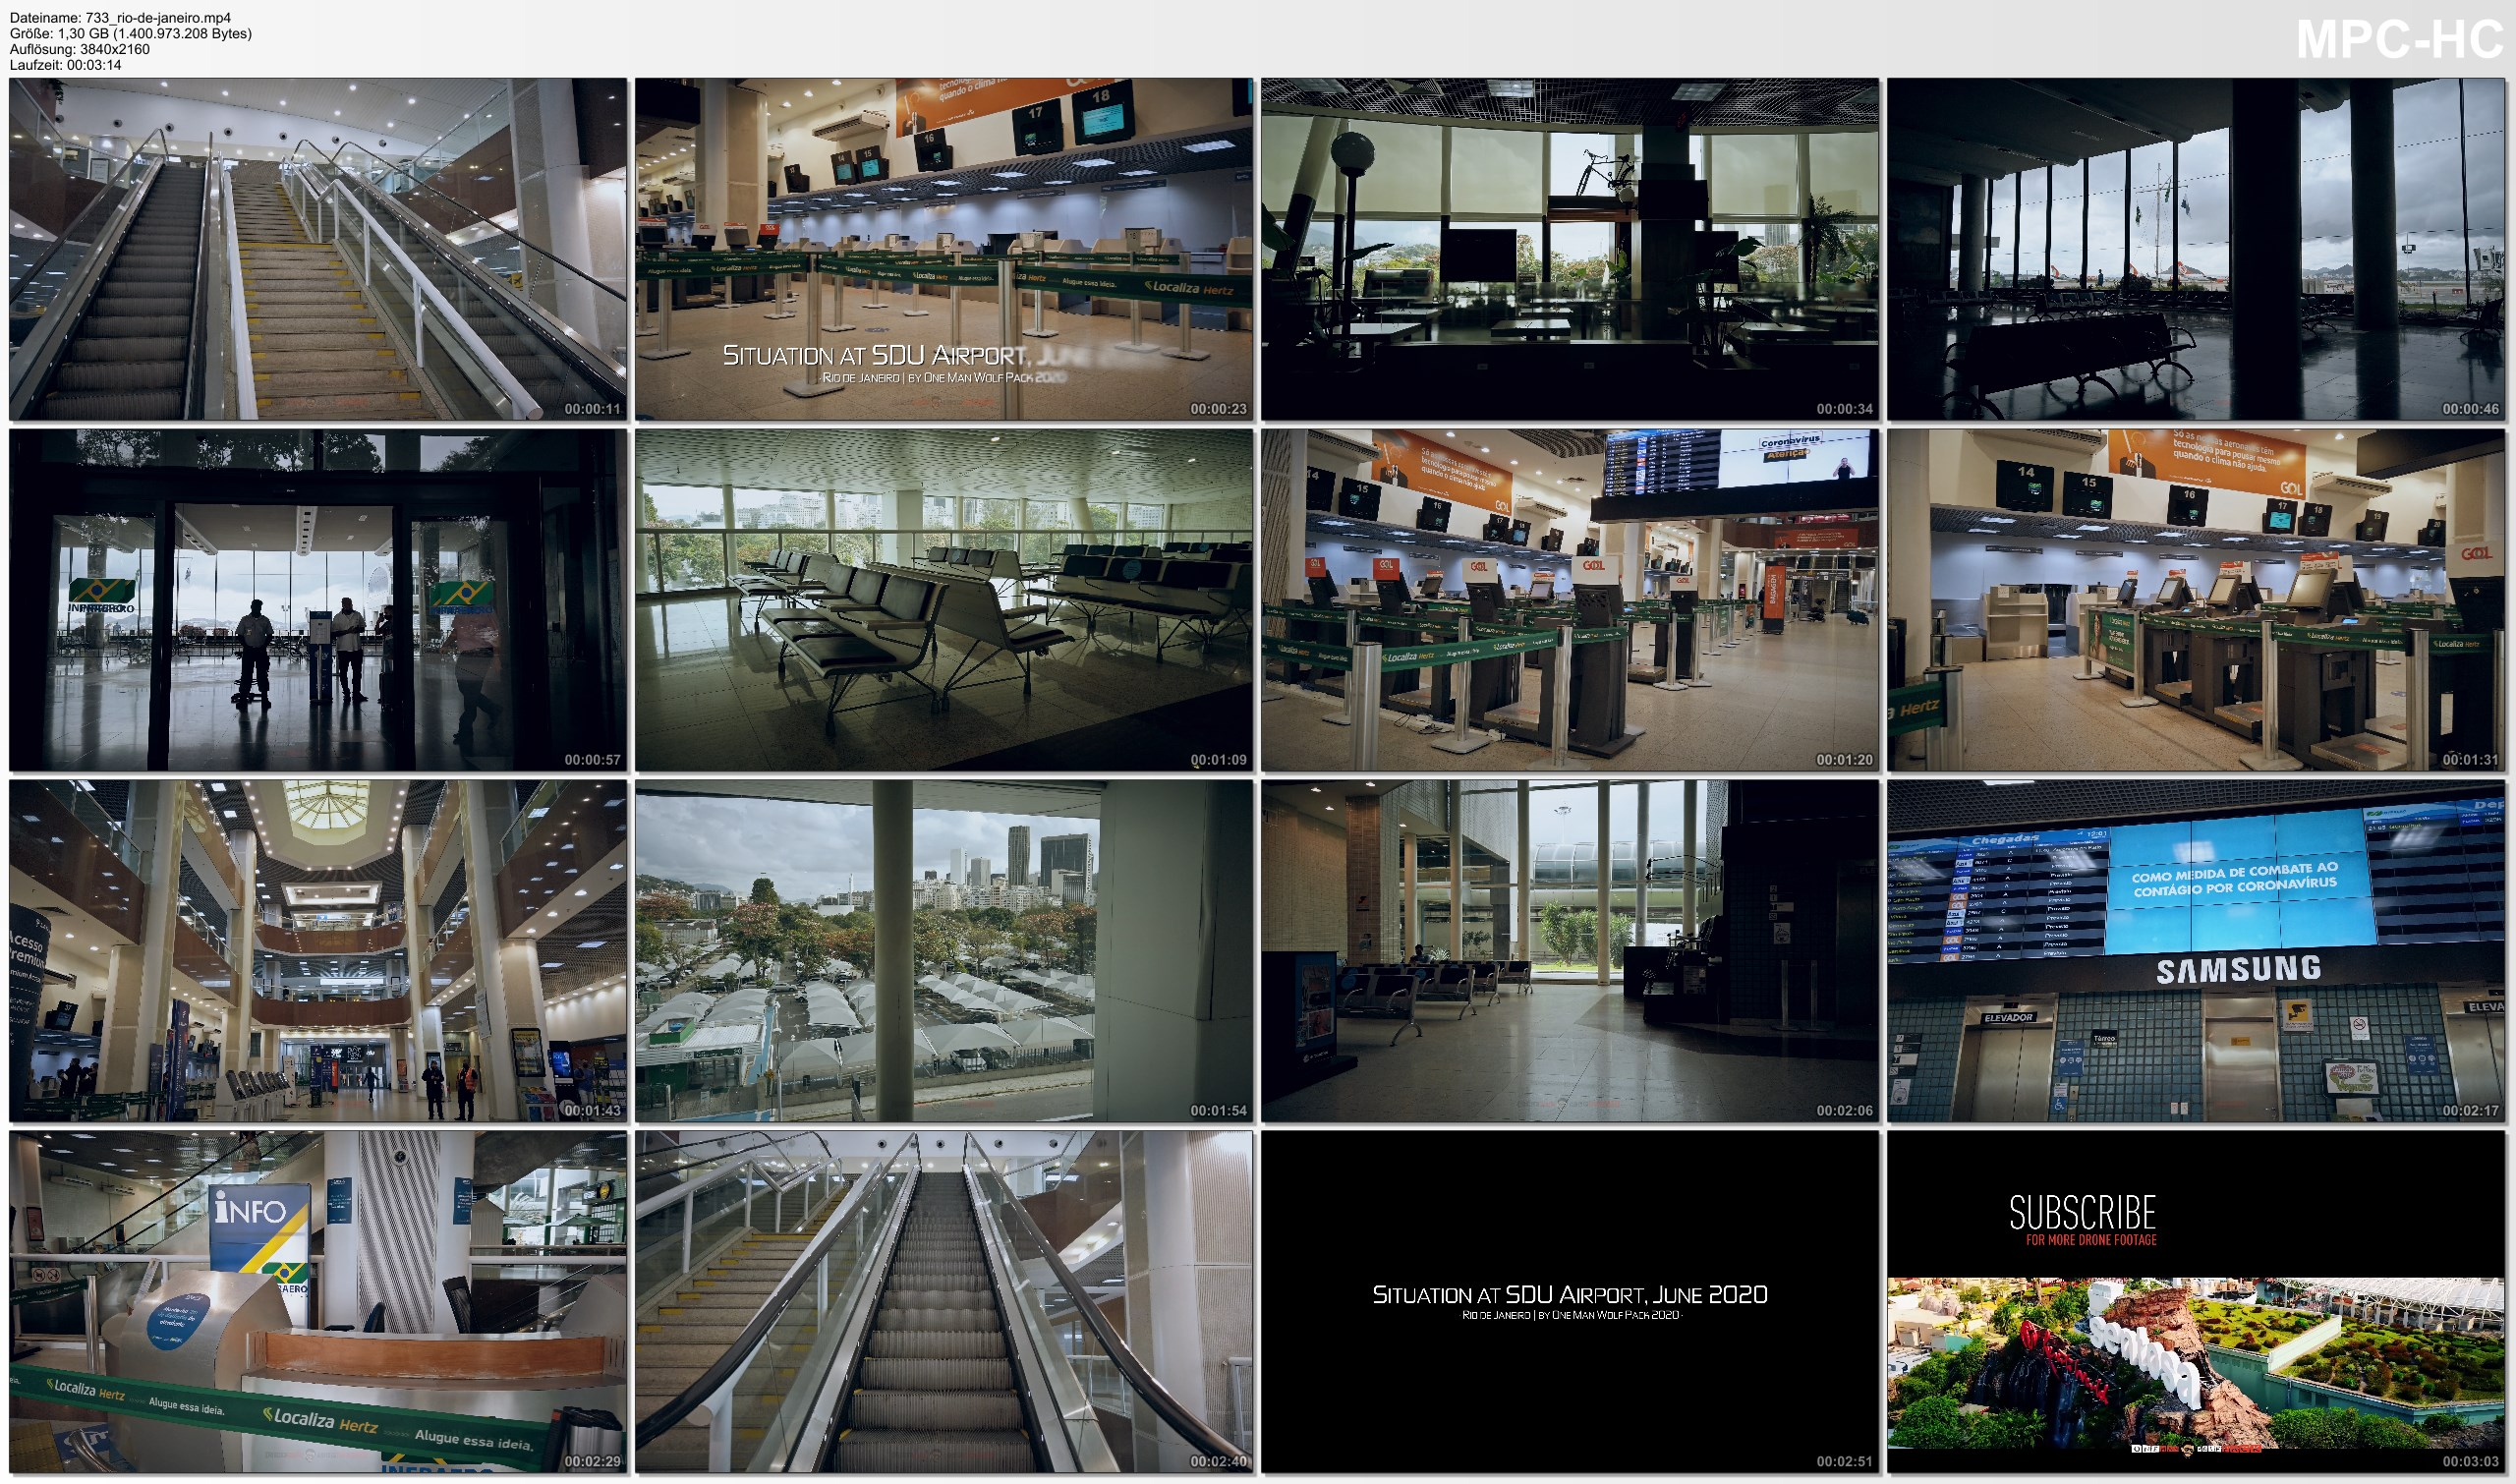 Pictures from Video 【4K】VIRTUAL WALKING TOUR: «Lockdown in Rio de Janeiro - Santos Dumont Airport Brazil 2020» Covid-19